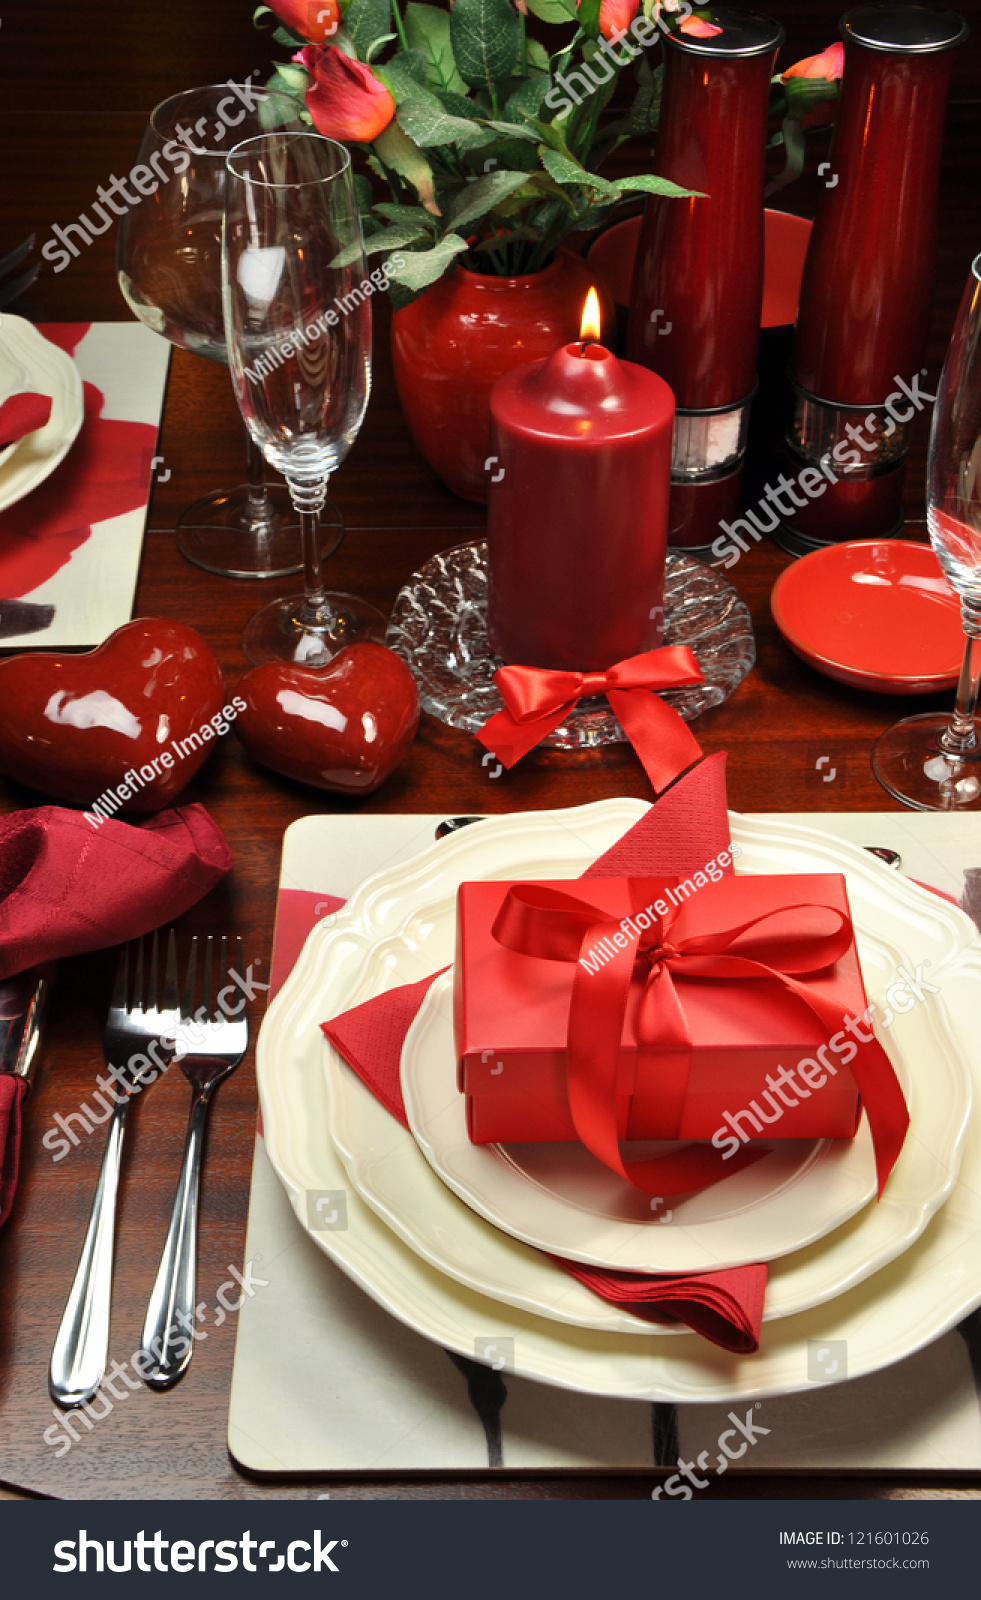 How to set a romantic dinner table for two - Red Valentine Romantic Dinner For Two Table Setting With Gift Candle And Hearts Vertical